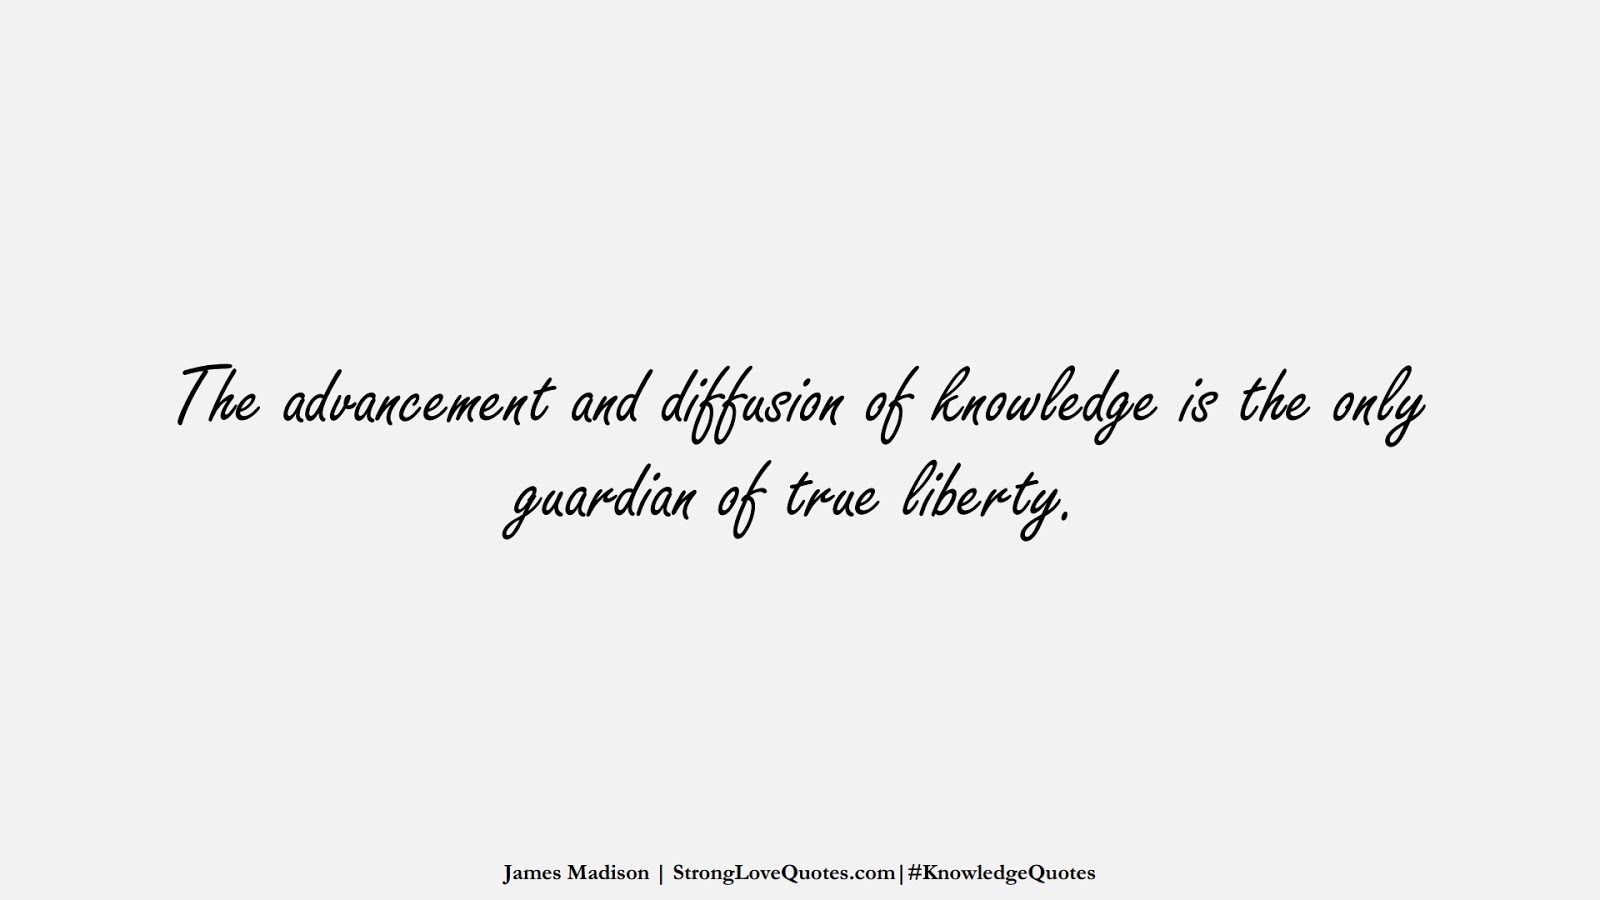 The advancement and diffusion of knowledge is the only guardian of true liberty. (James Madison);  #KnowledgeQuotes